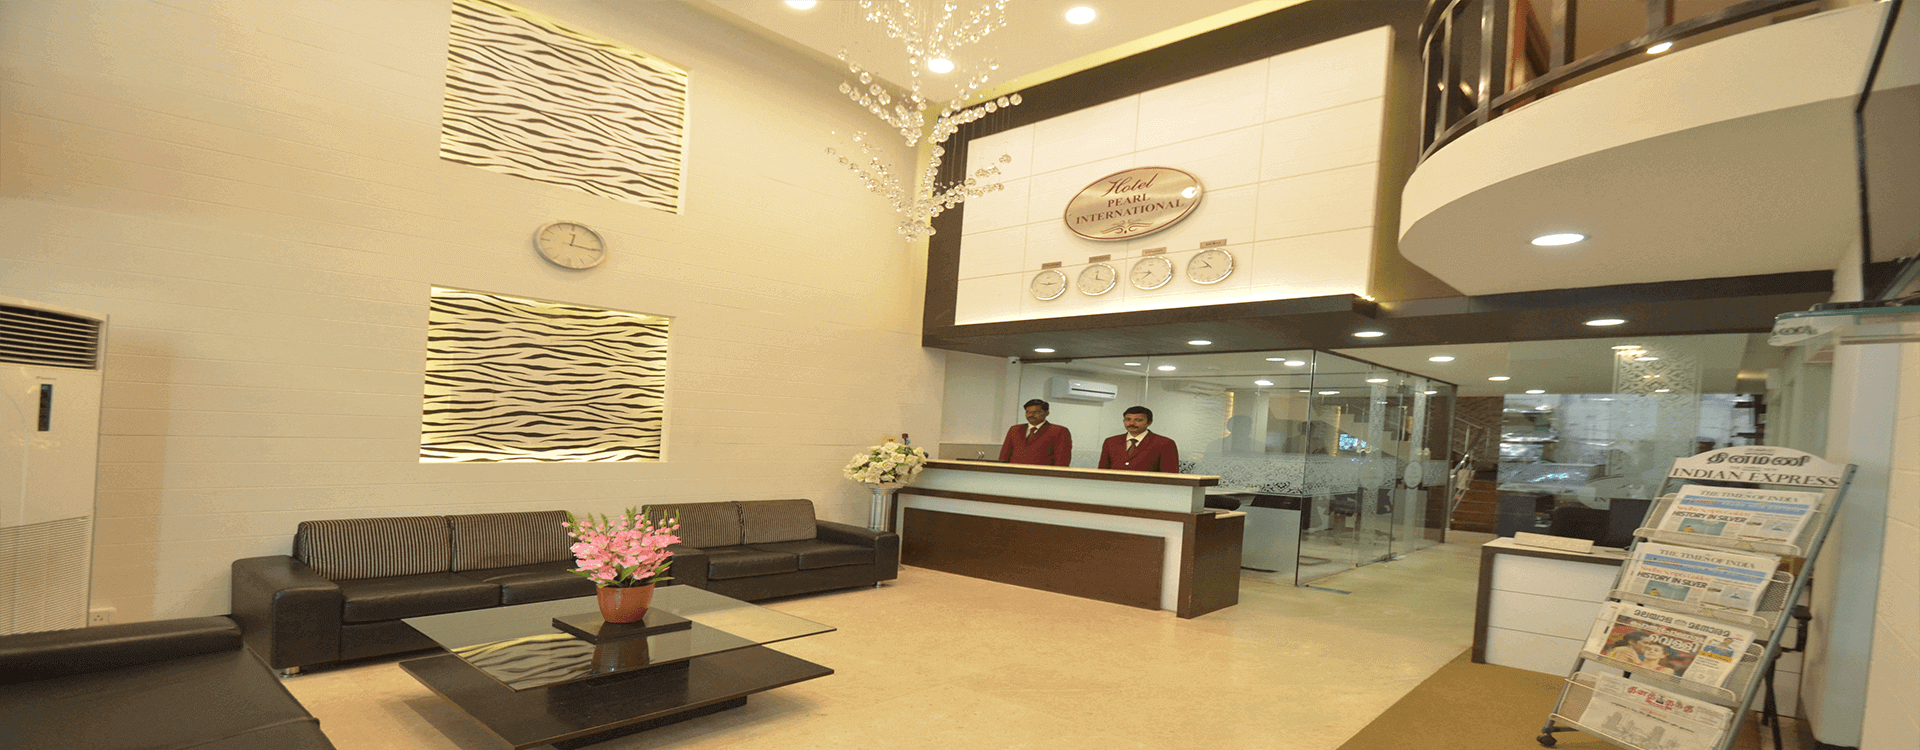 Cheap and Luxury Hotels in Chennai, India | Business class